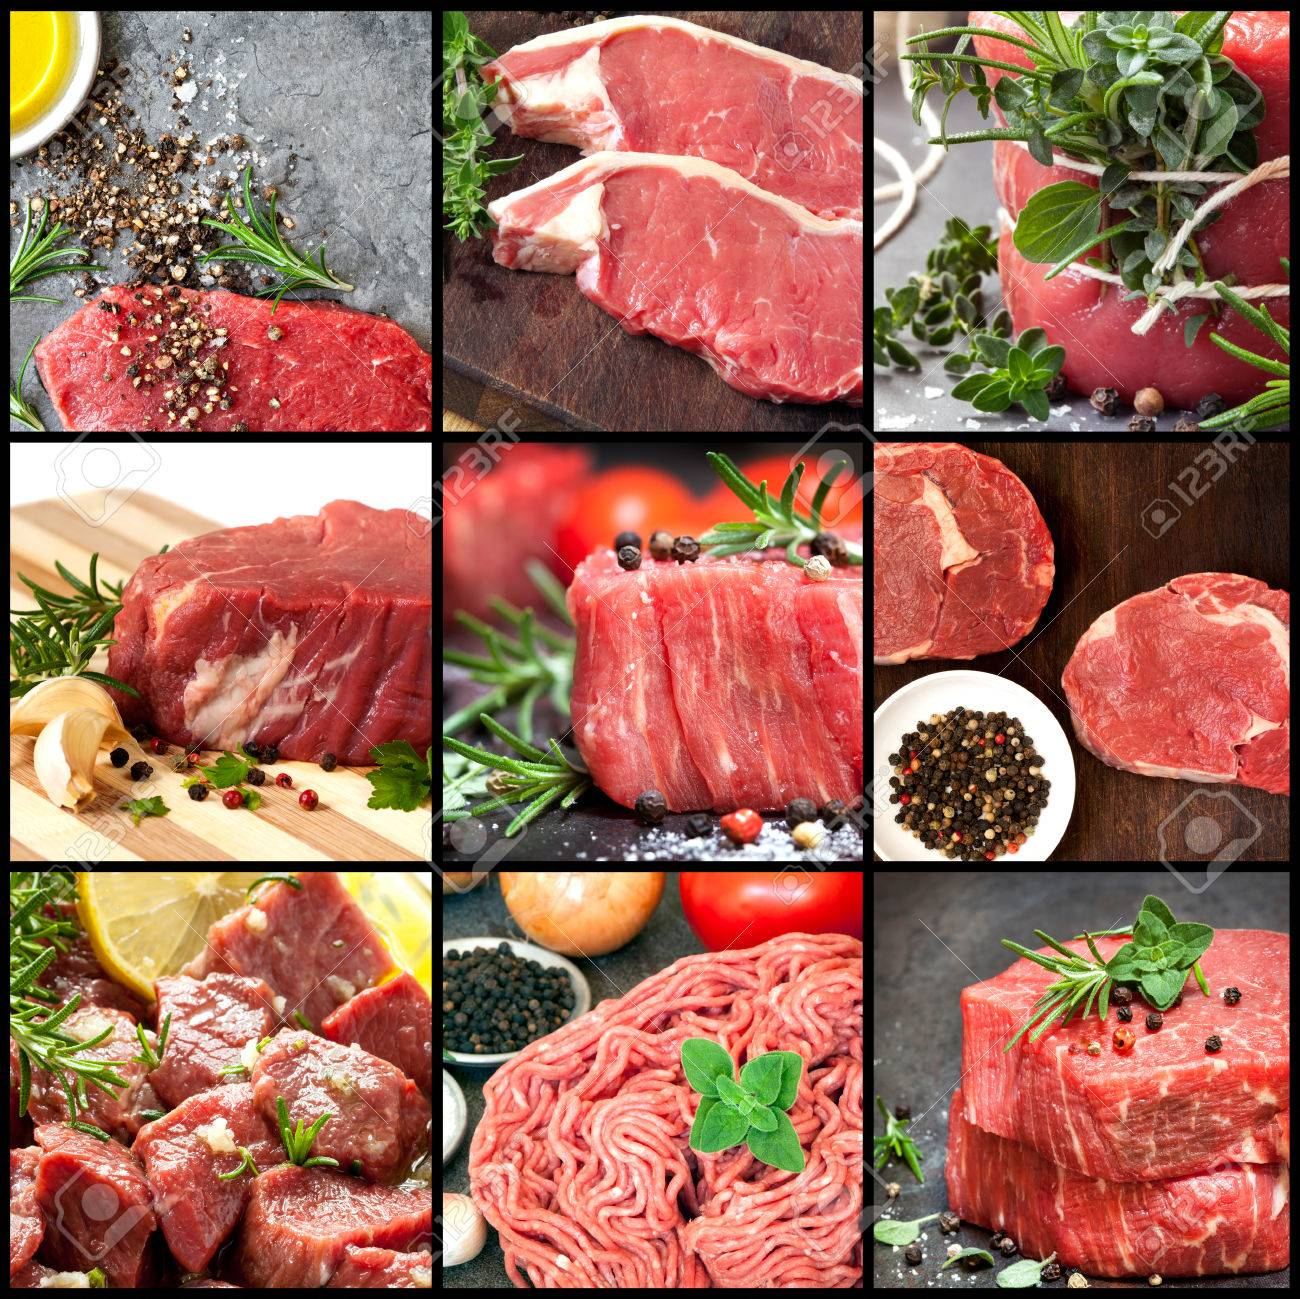 Collection of raw beef images. Includes herbs and spices. - 51357562